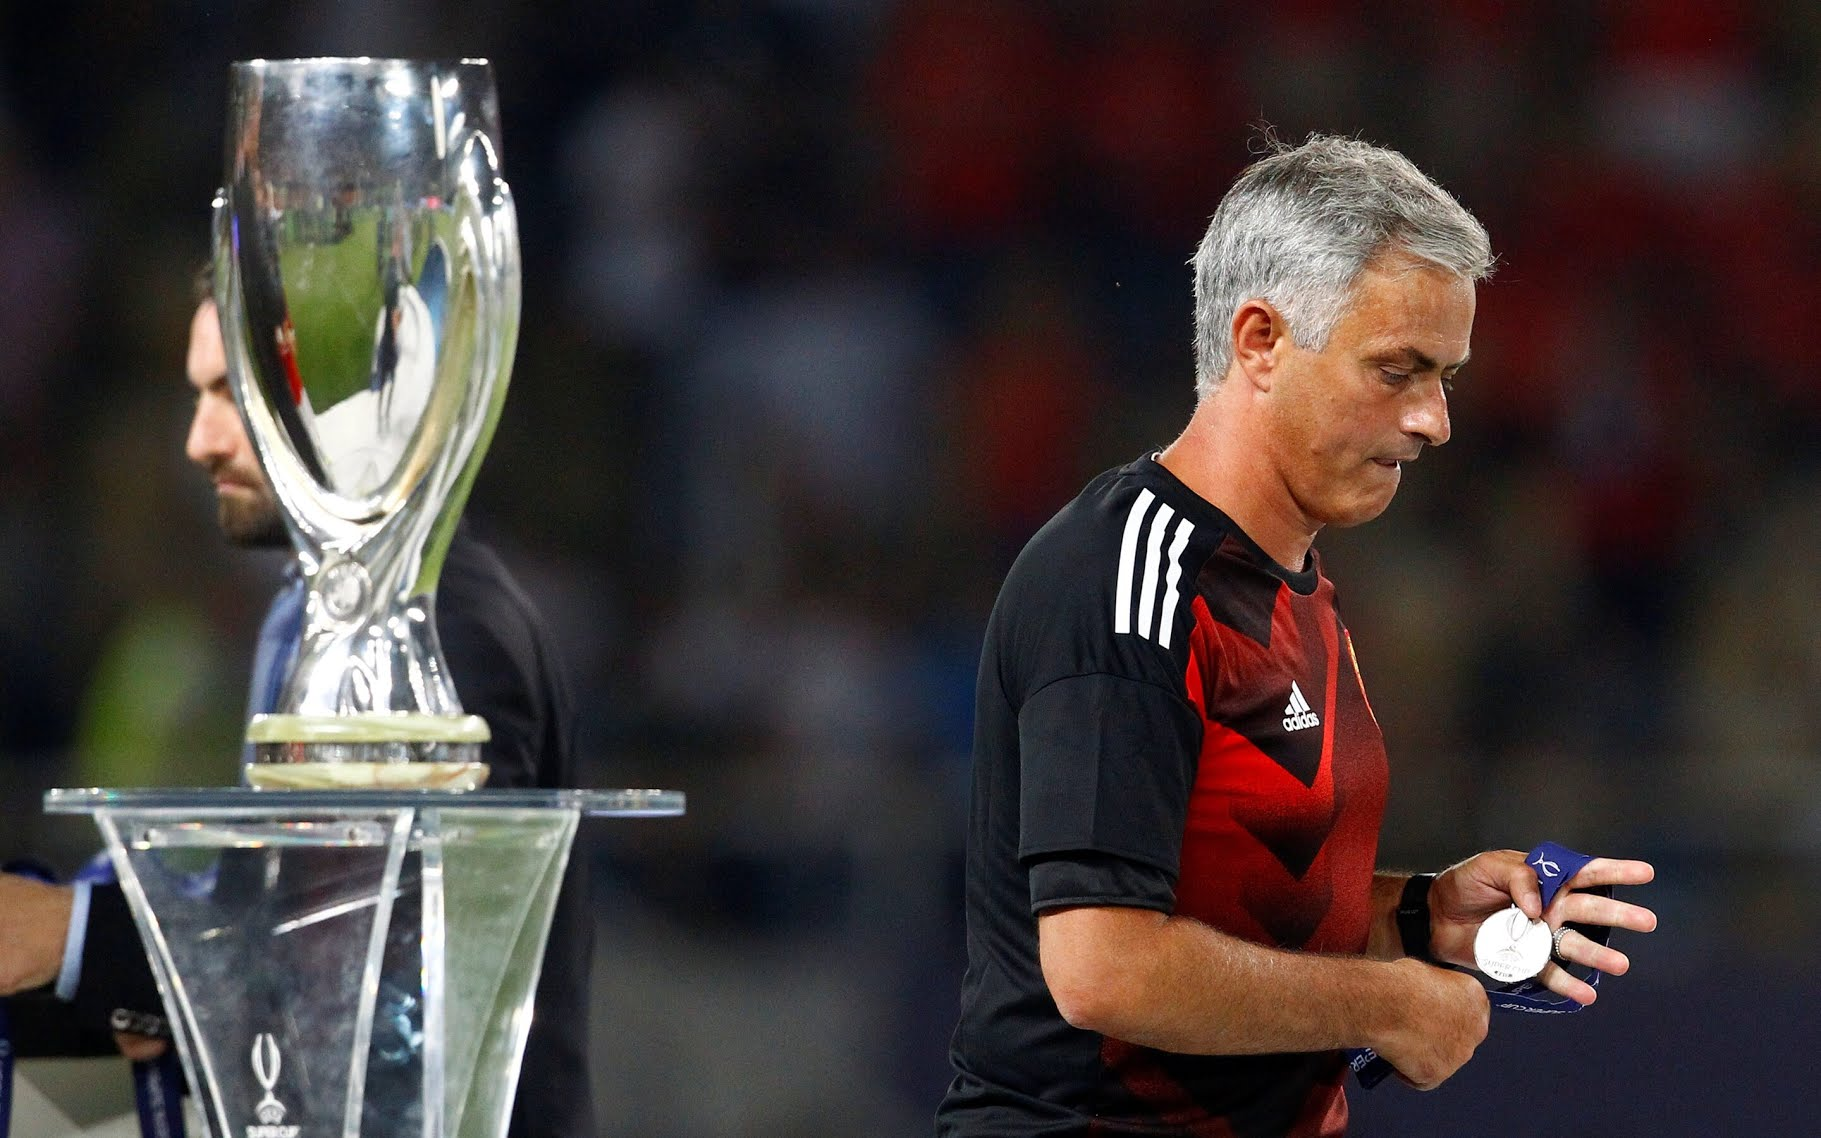 Jose Mourinho walks away with his runners up medal